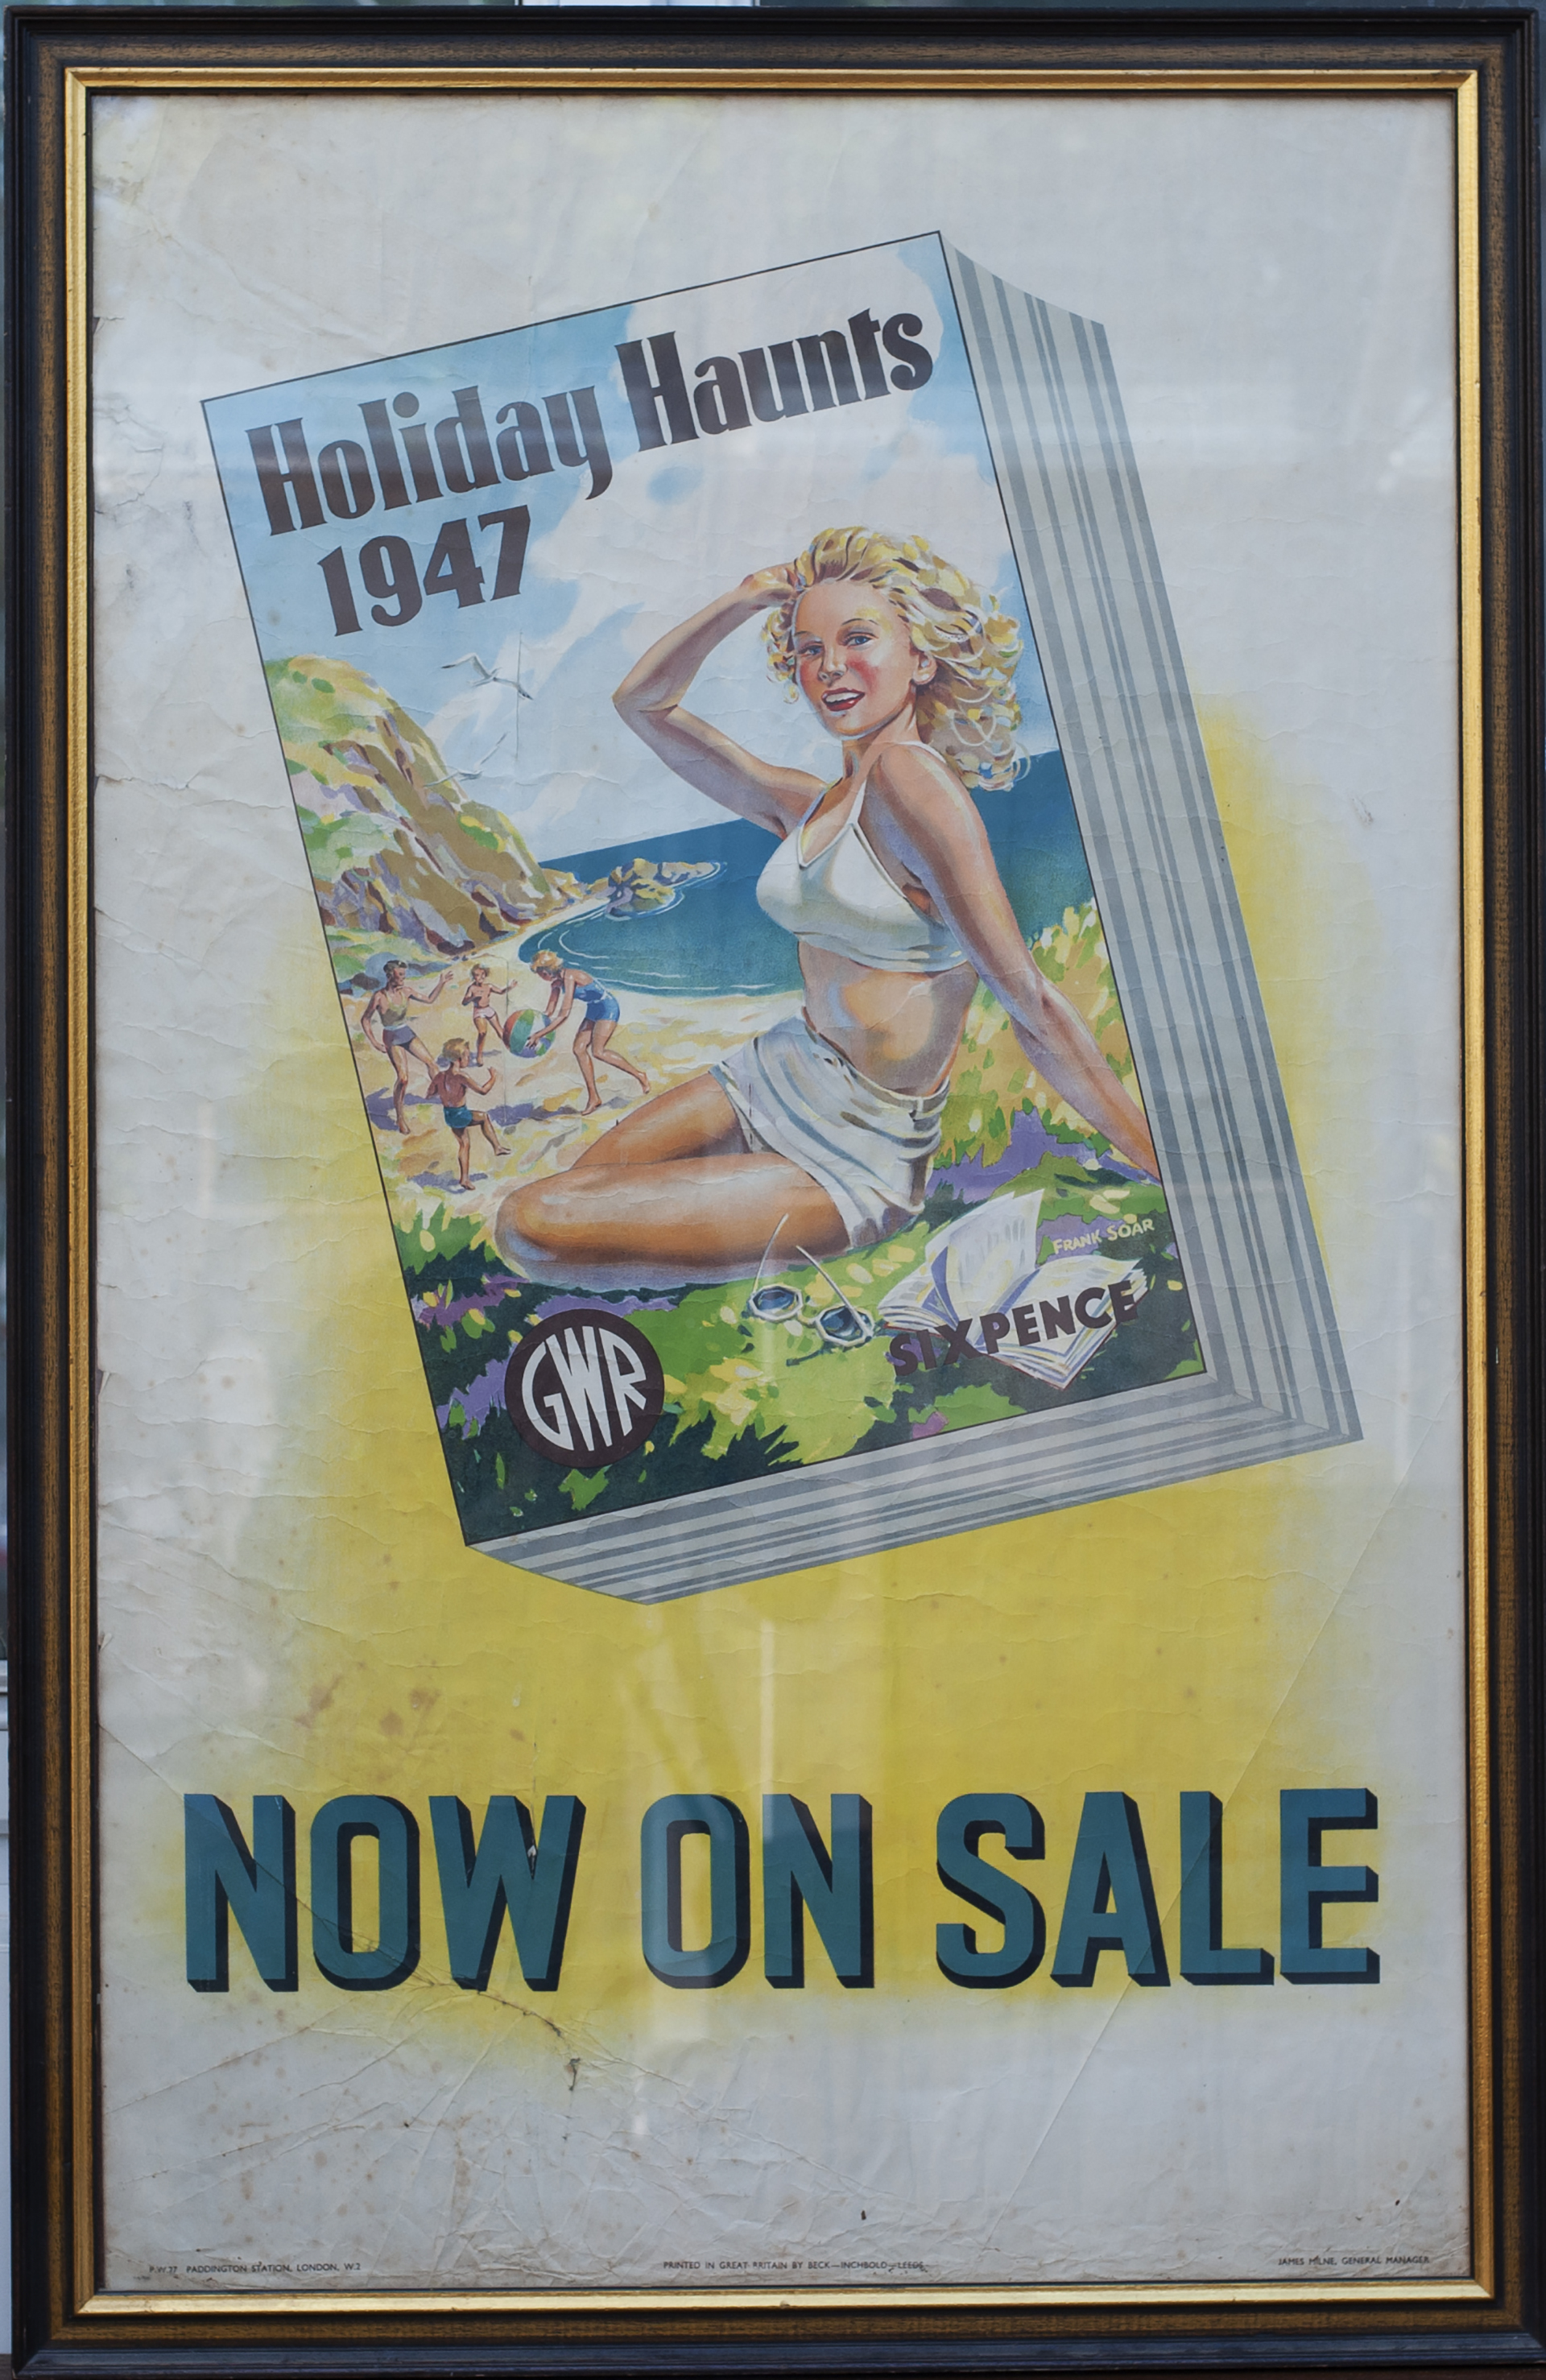 Poster GWR HOLIDAY HAUNTS 1947 NOW ON SALE by Frank Soar. Double Royal 25in x 40in. In good